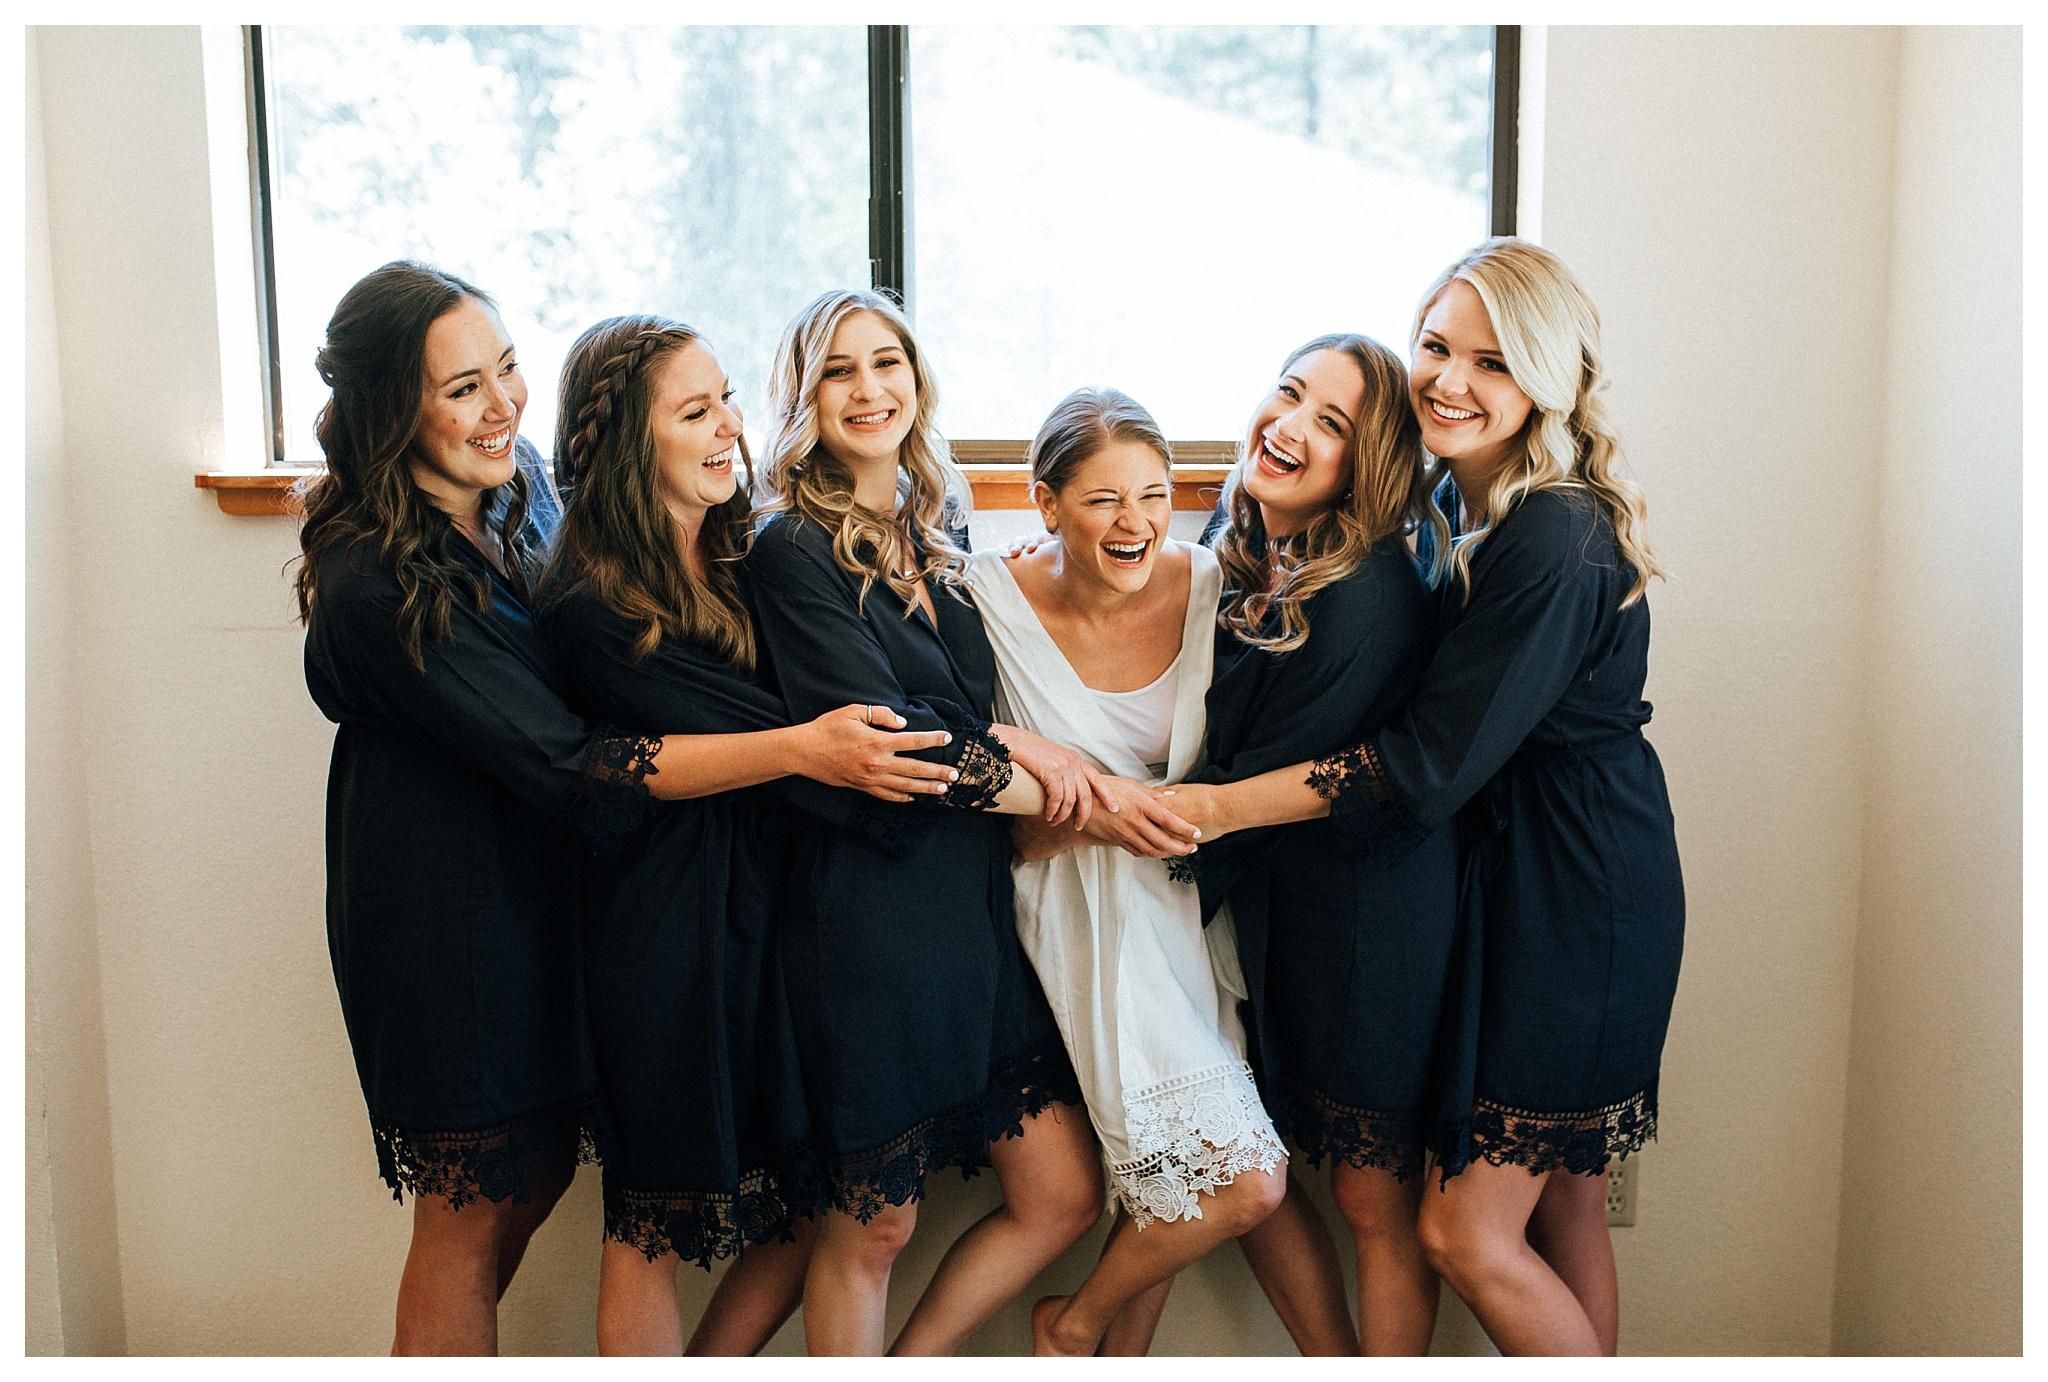 brideandbridesmaidsgettingreadygranlibbakentahoe.jpg